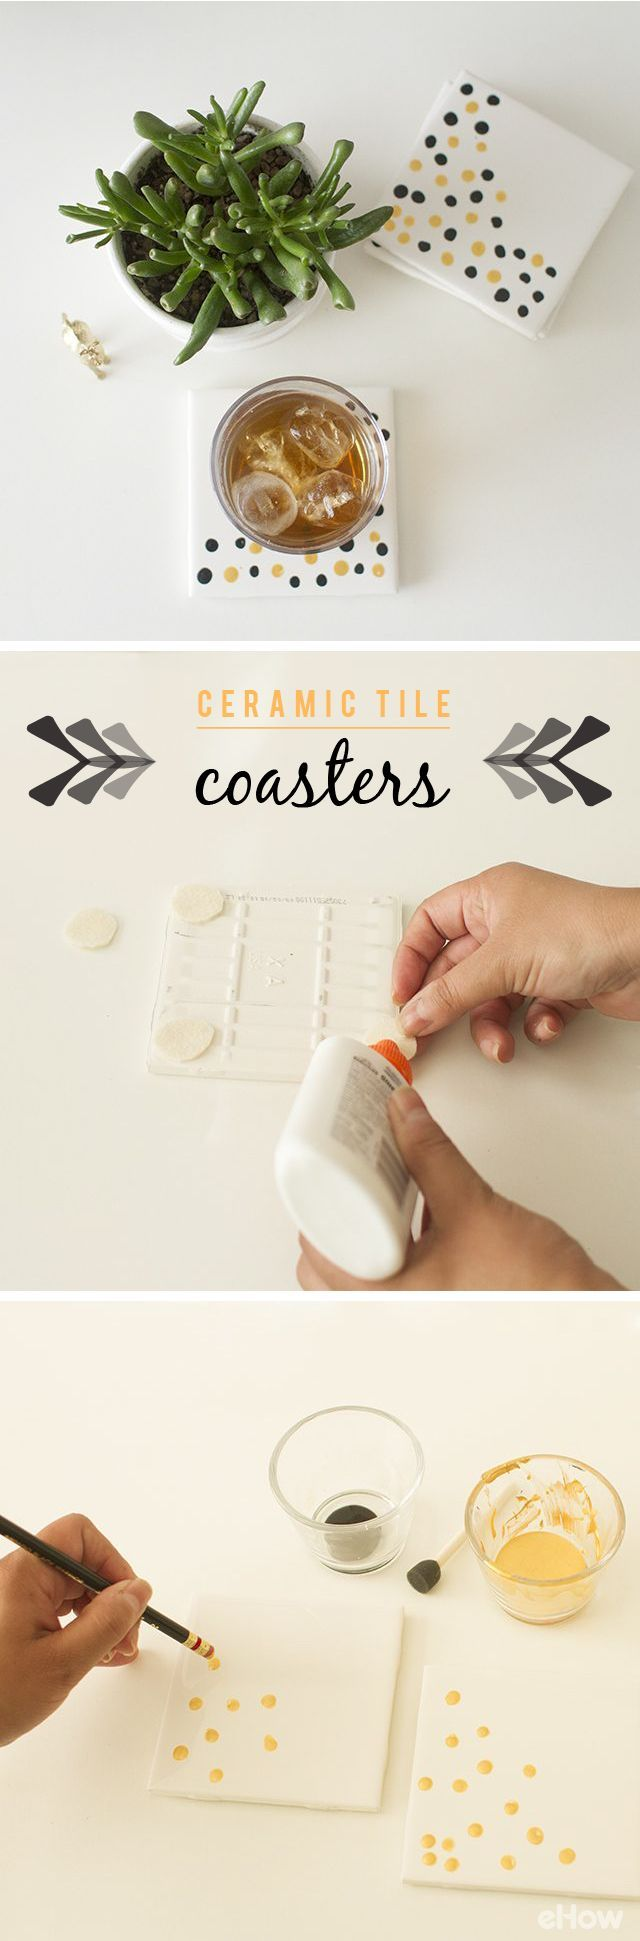 how to make ceramic tiles